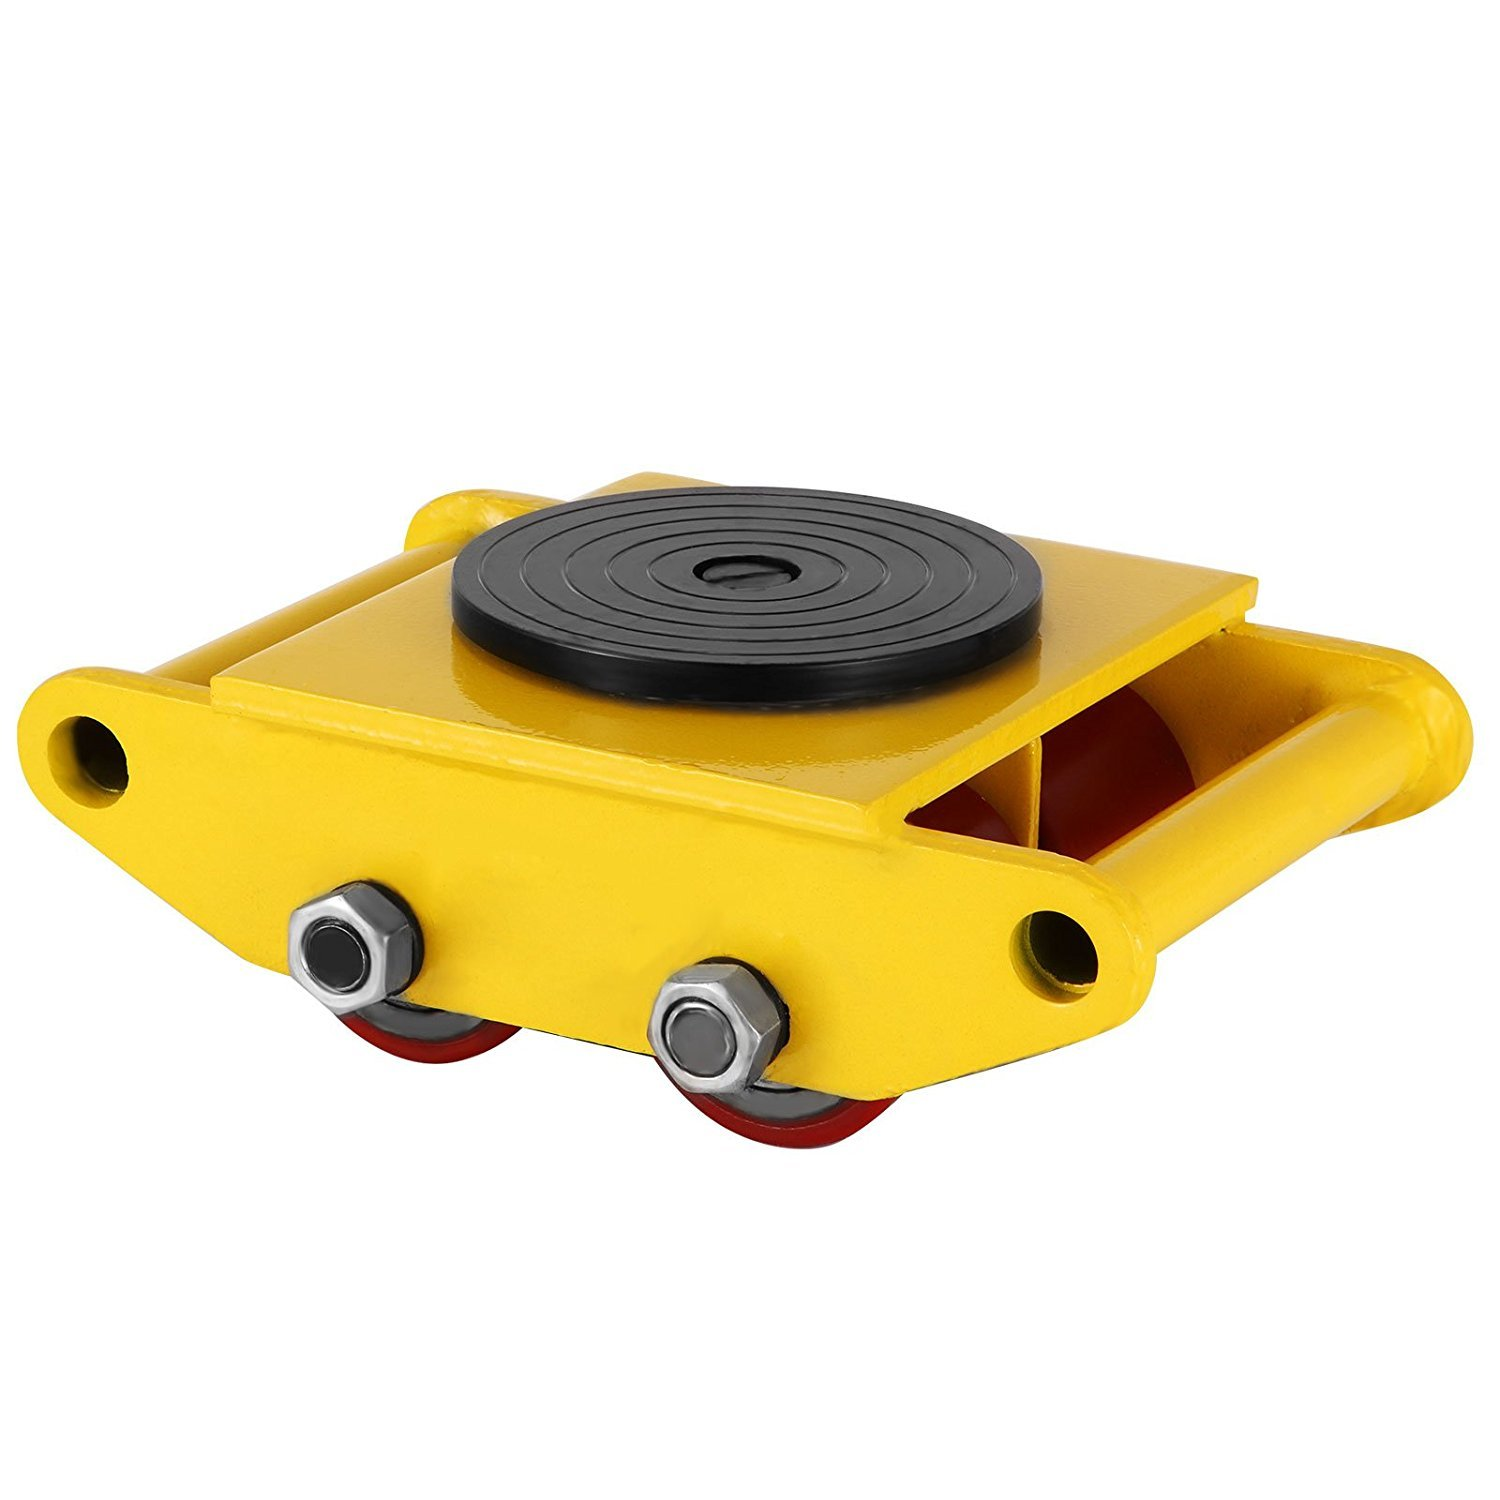 Hopopular Machinery Mover 13200LB Capacity Machinery Skate 4 Rollers Dolly Skate Roller with 360 Degree Rotation Cap